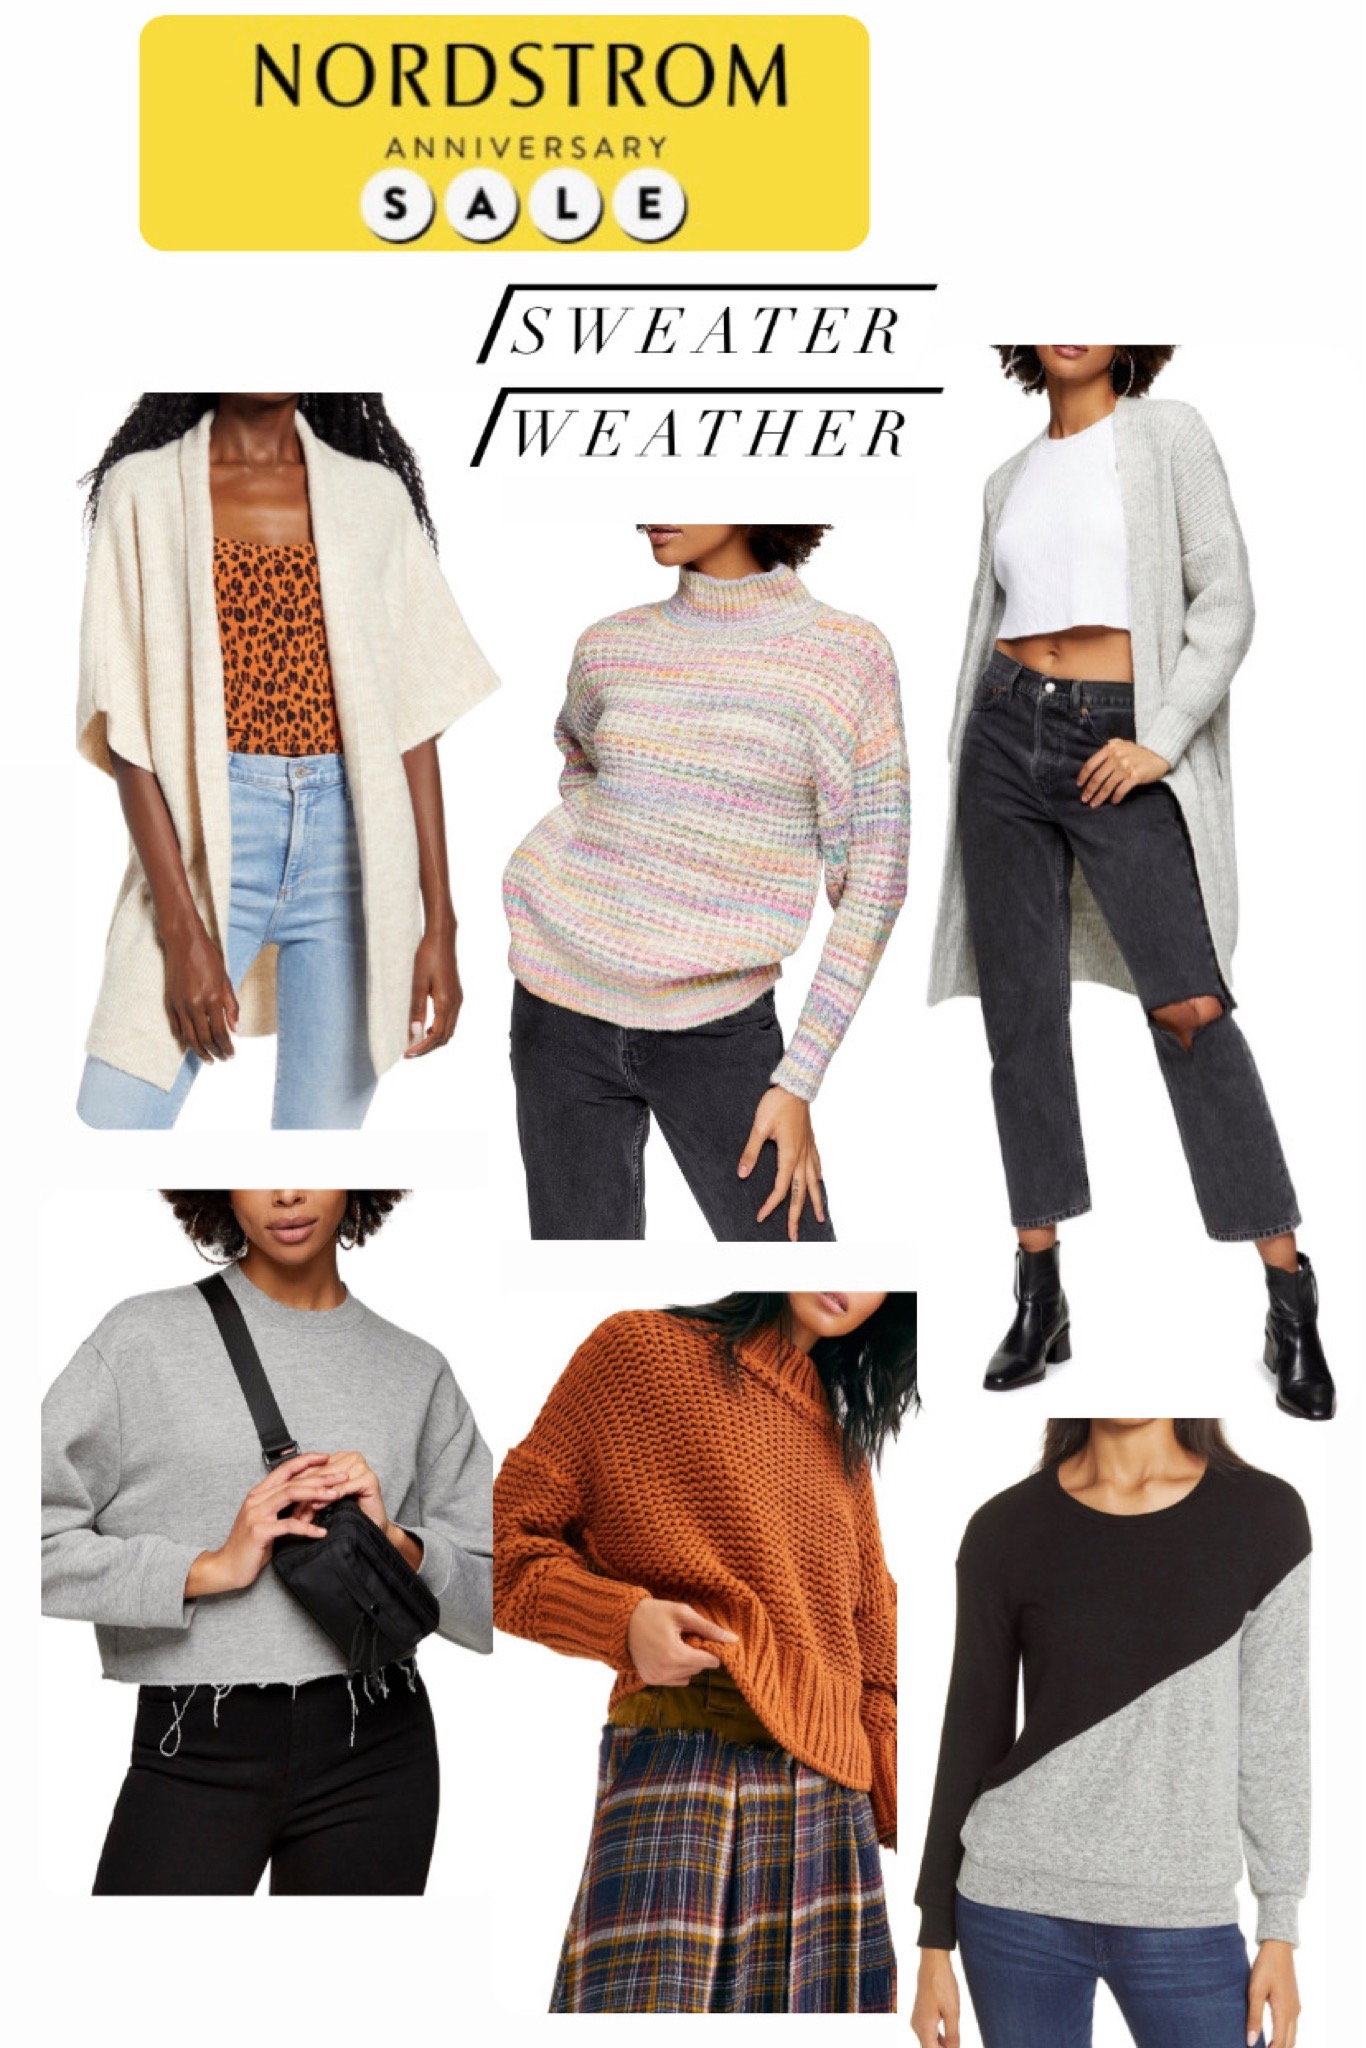 FIRST GLIMPSE OF THE NORDSTROM ANNIVERSARY SALE- Jaclyn De Leon Style + sharing my must-have picks for this years sale from everyday essentials to trendy favorites